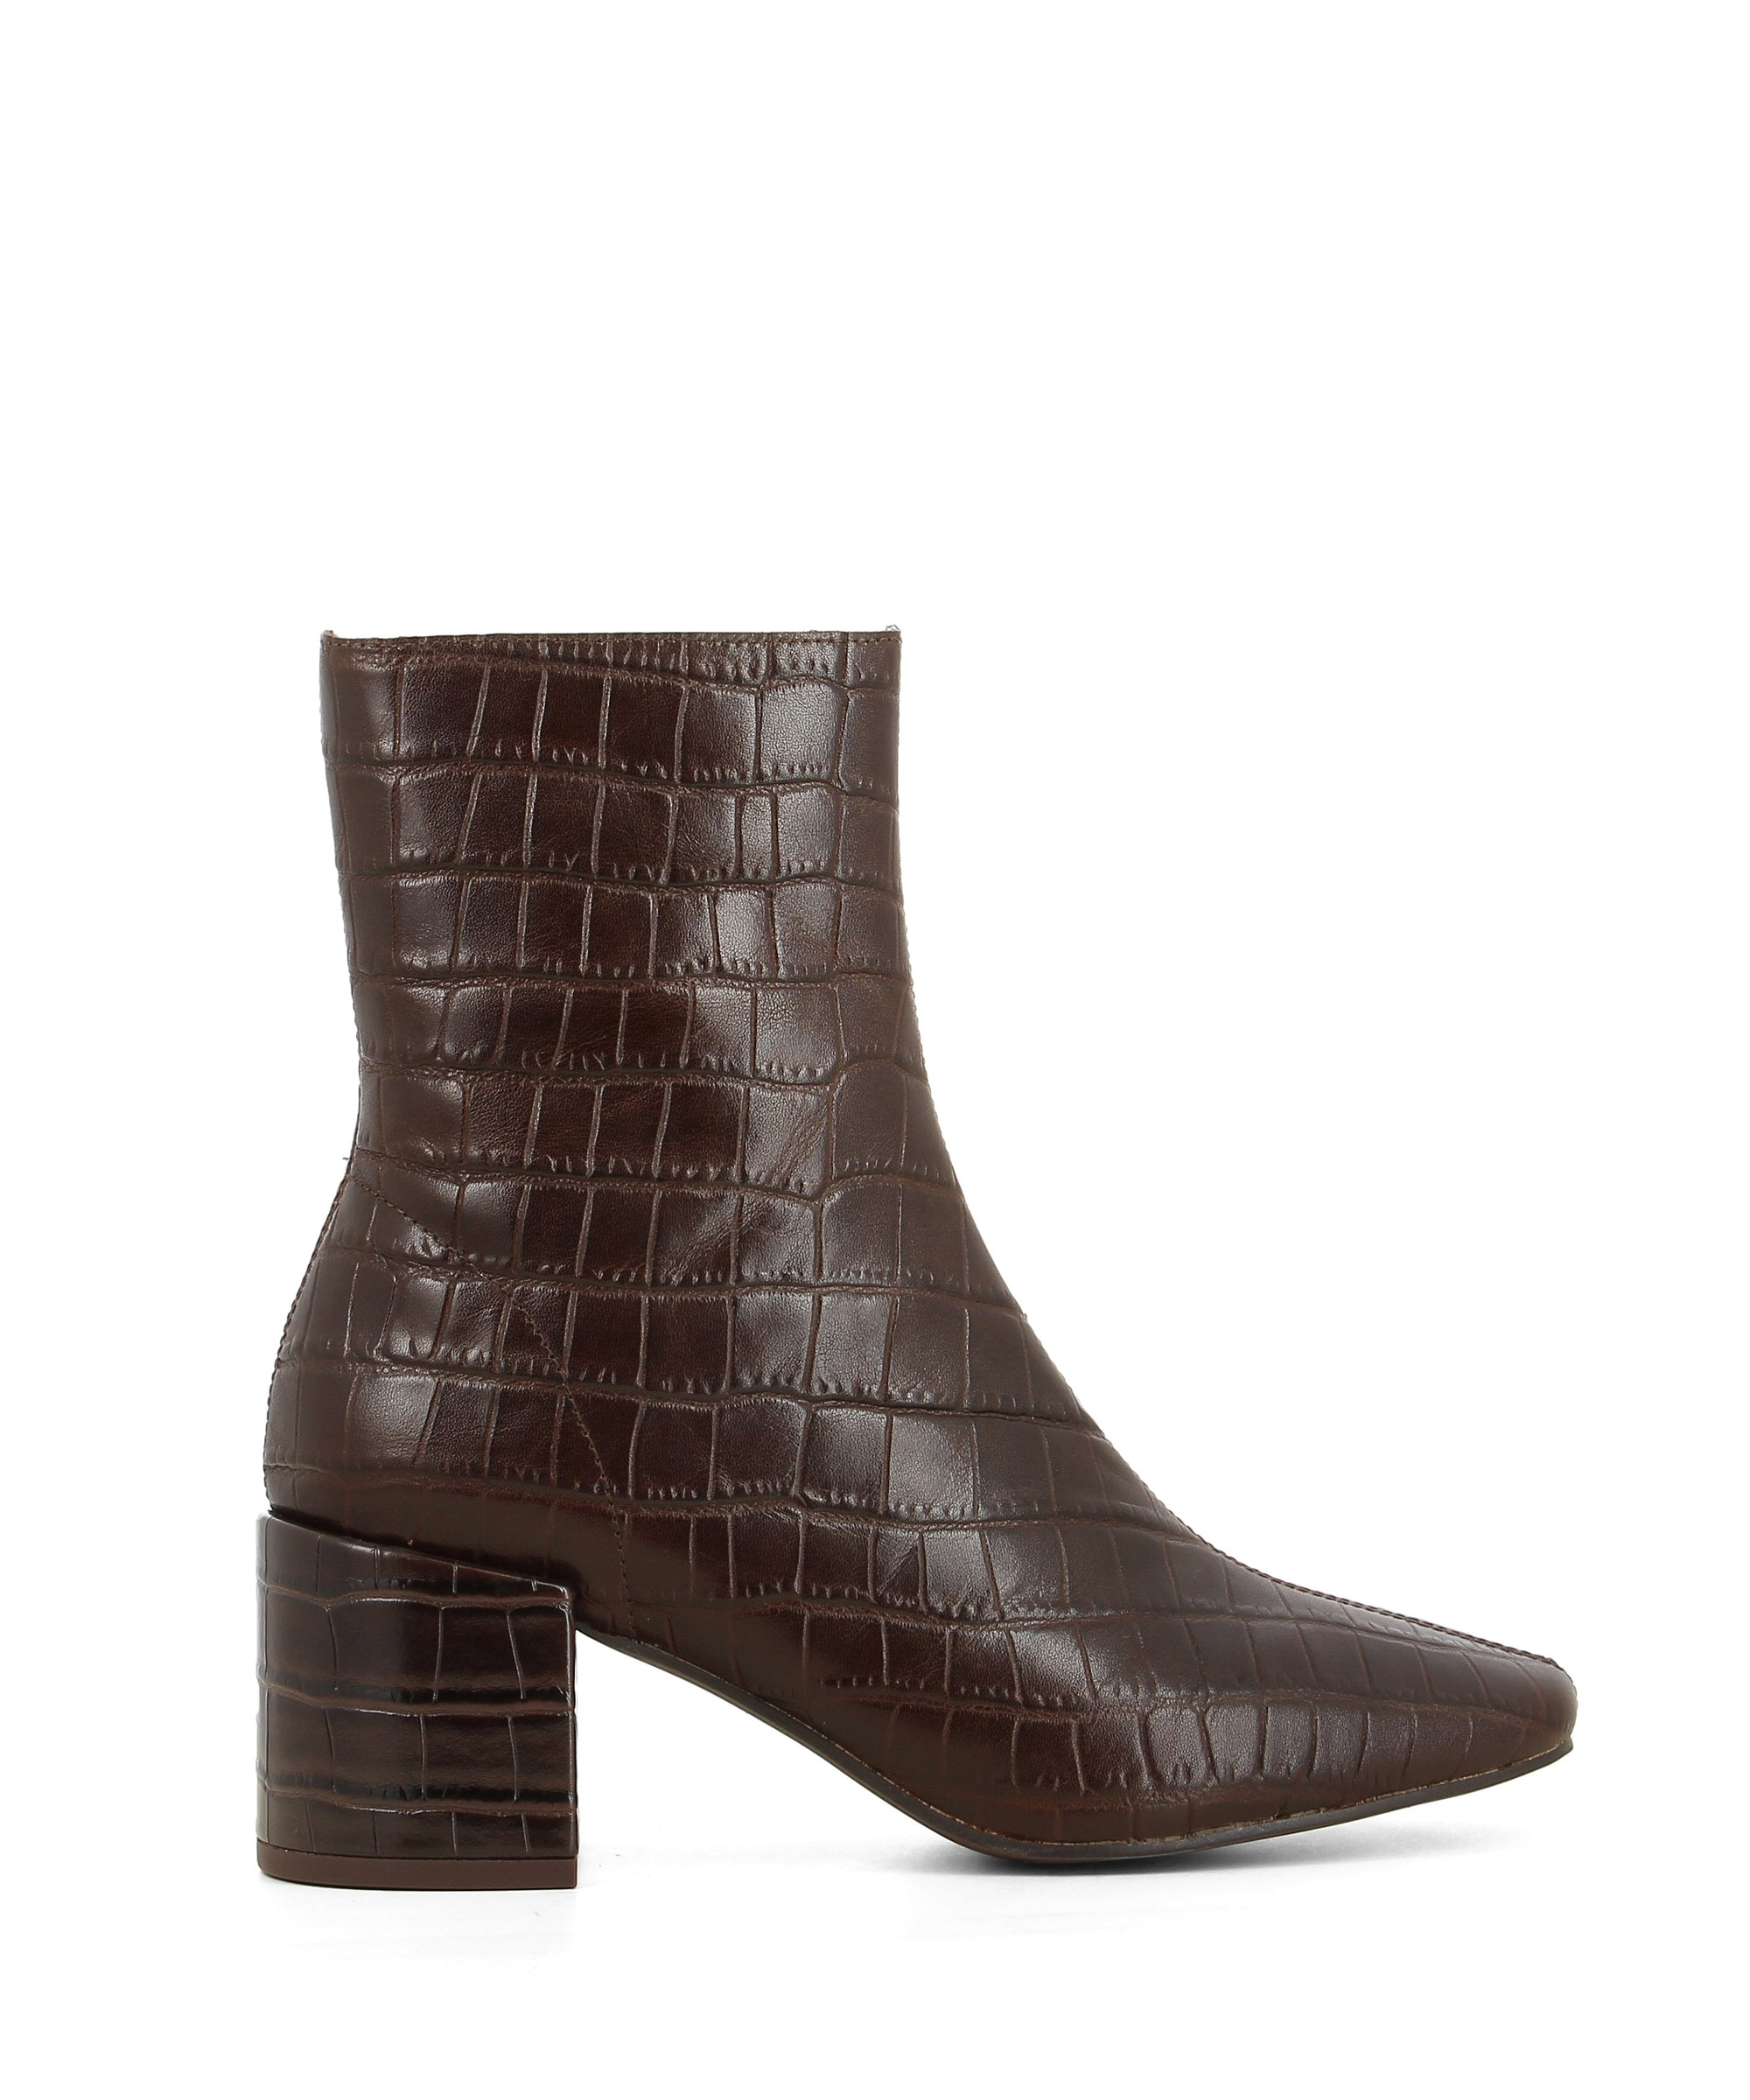 A brown croc leather block heel ankle boot. Made by Jeffrey Campbell. This style runs true to size.